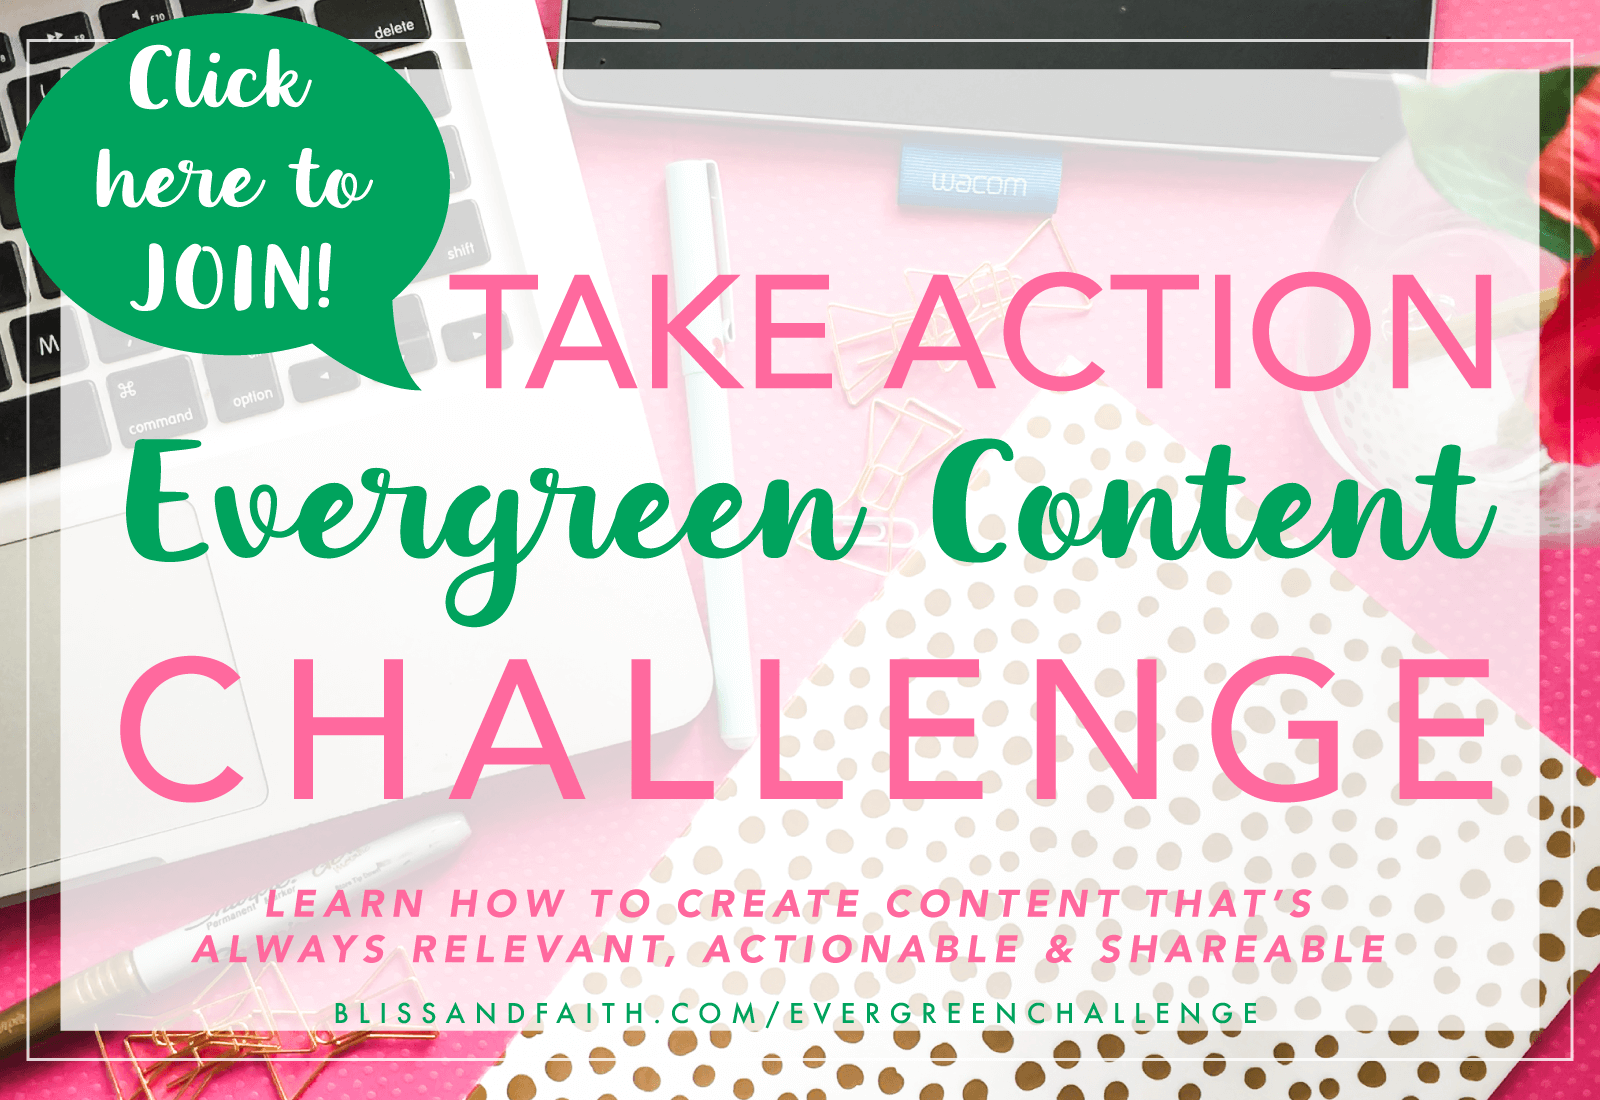 Take Action Evergreen Content Challenge | BlissandFaith.com